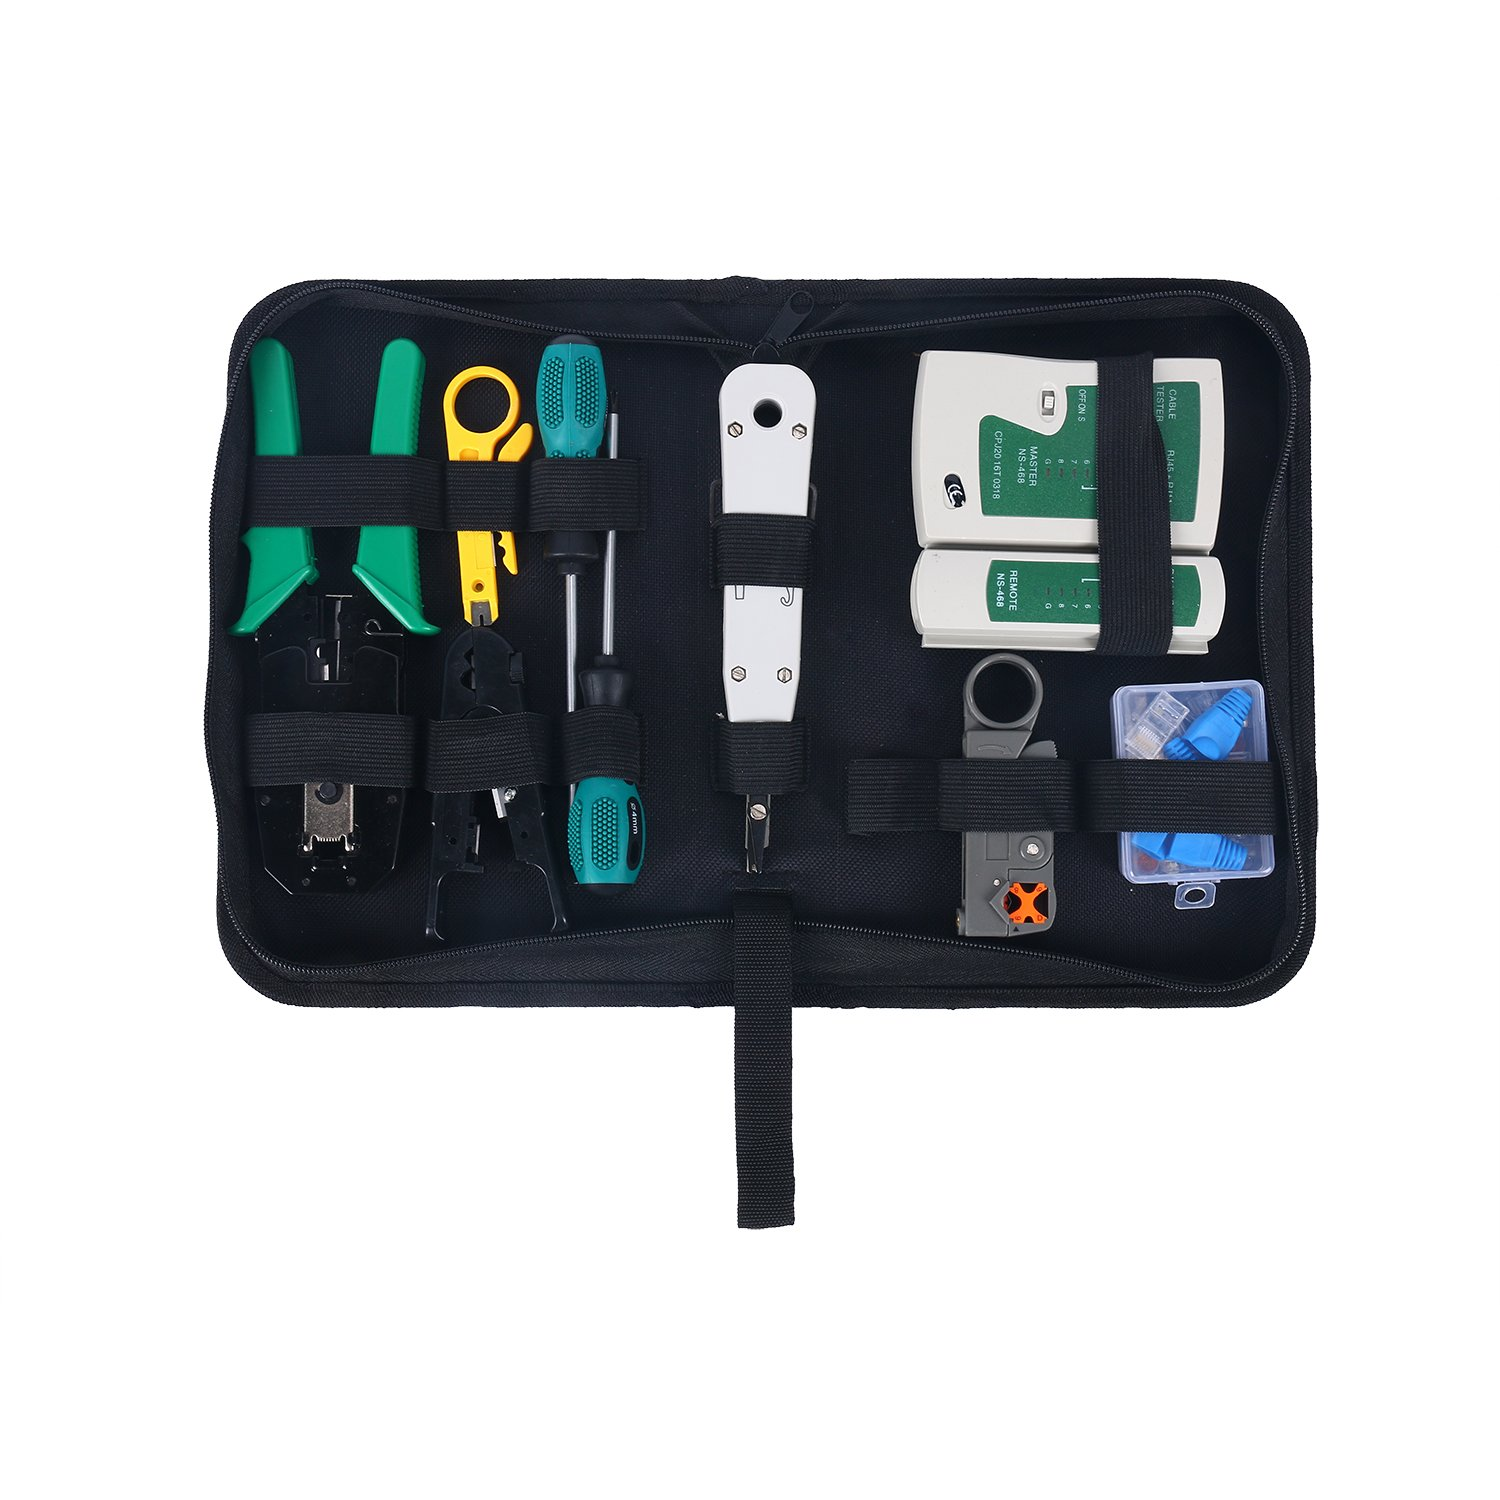 Yaetek Portable Ethernet Network Tool Cable Tester Lan Kit Rj45 Cat6 Wiring Block Crimper Plug Crimping Set Punch Down Rj11 Cat5